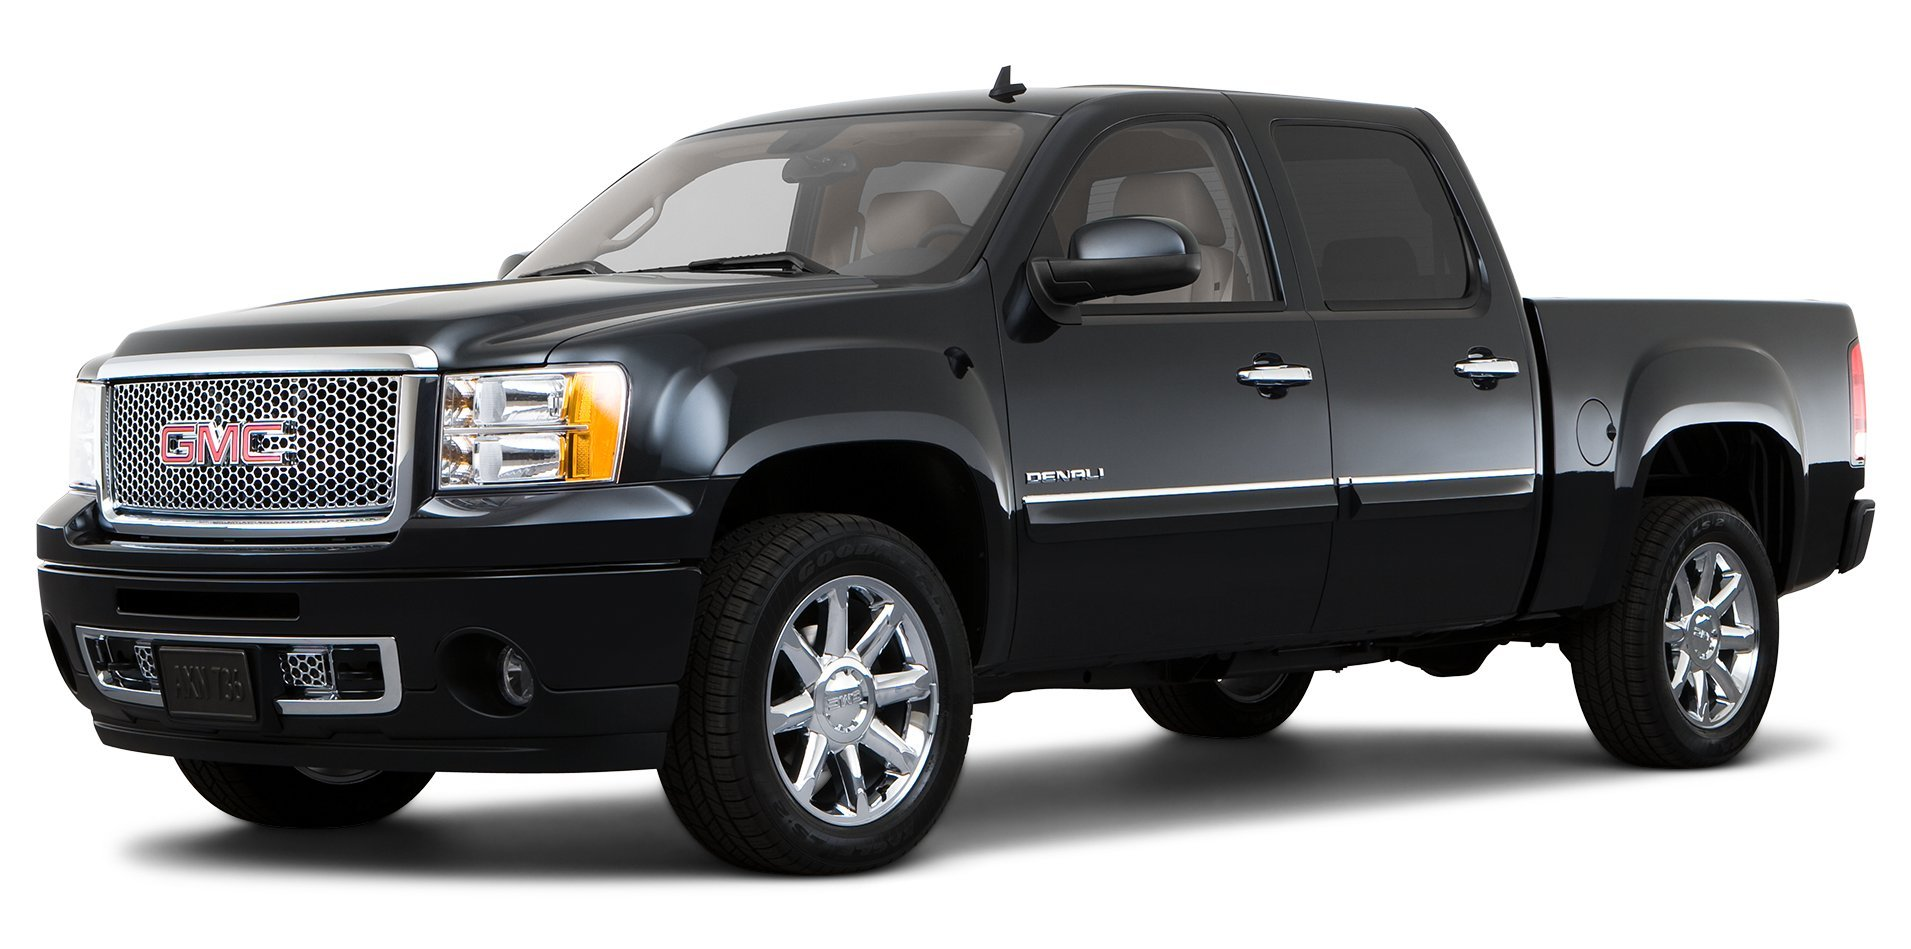 2010 gmc sierra 1500 reviews images and specs vehicles. Black Bedroom Furniture Sets. Home Design Ideas